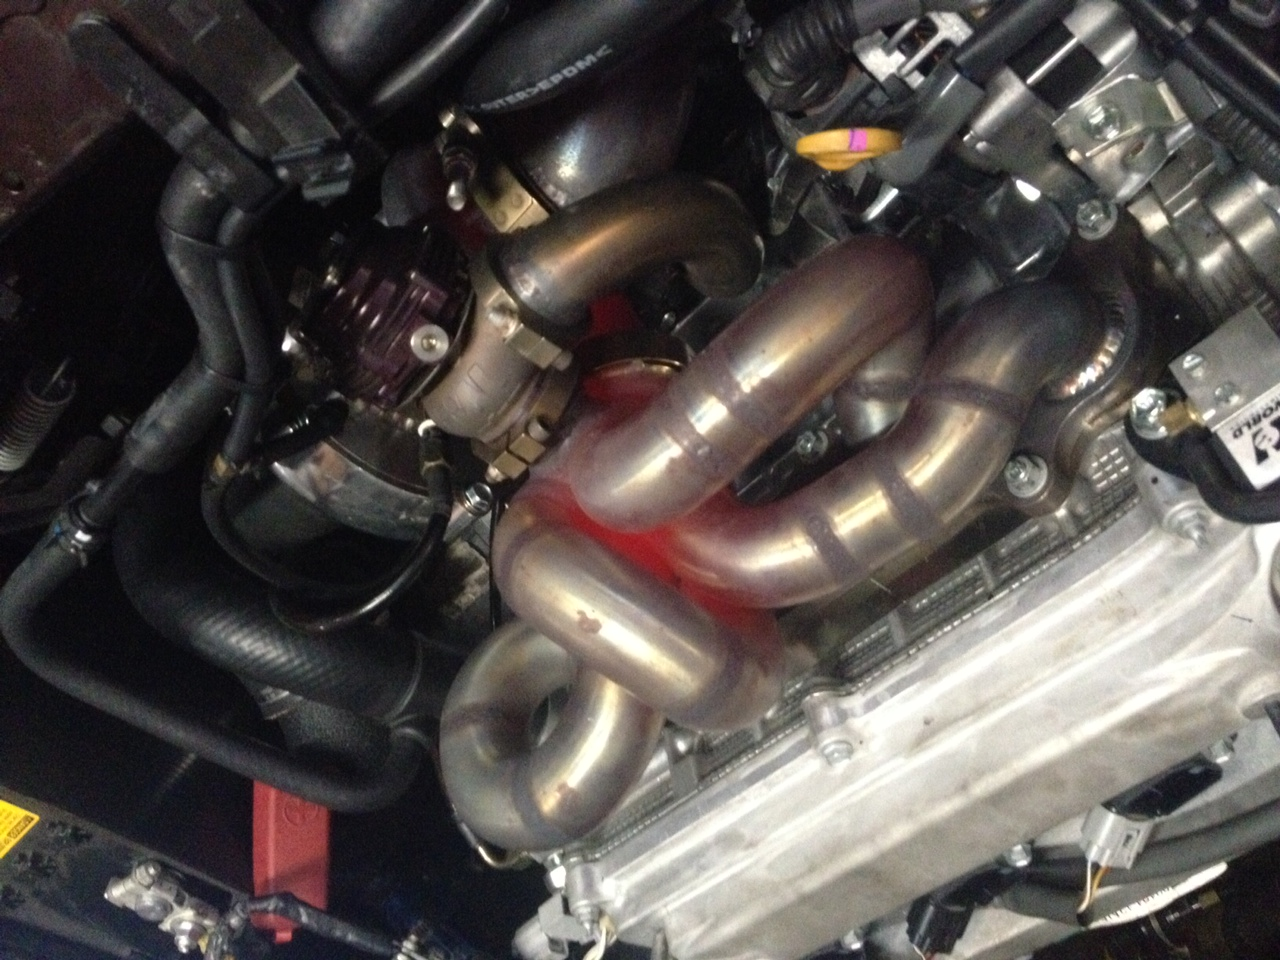 Descendant Turbo Kit for xb2 for sale-photo-1-copy.jpg